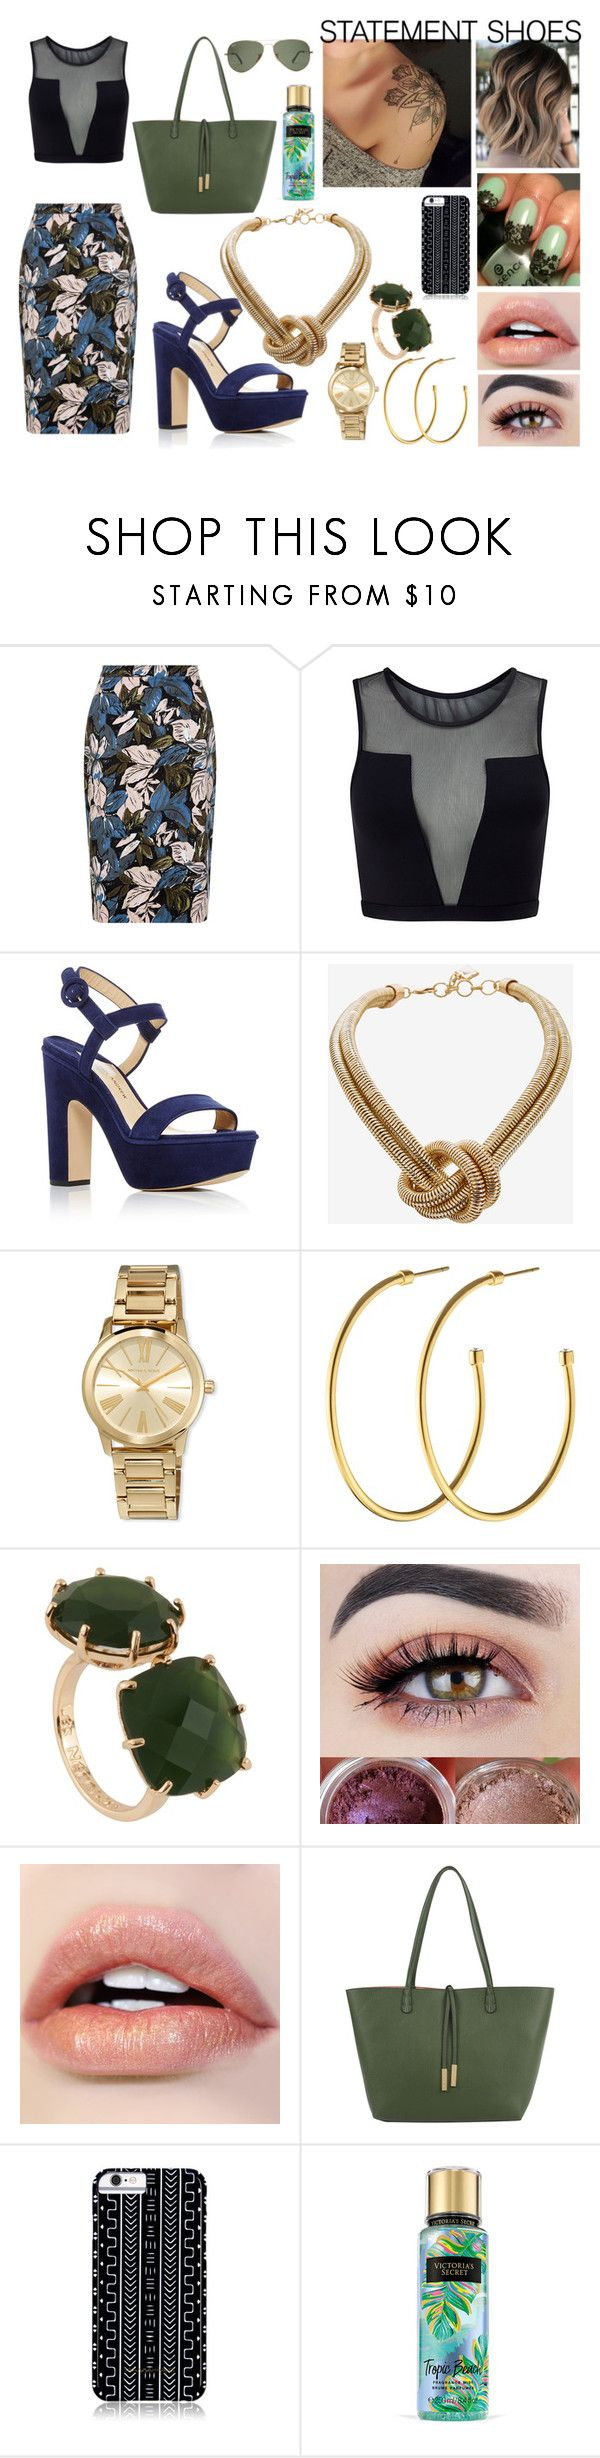 """Statement Shoes"" by xautumnxrainx ❤ liked on Polyvore featuring Varley, Paul Andrew, BCBGMAXAZRIA, MICHAEL Michael Kors, Dyrberg/Kern, Les Néréides, Remi & Reid, Savannah Hayes and Victoria's Secret"